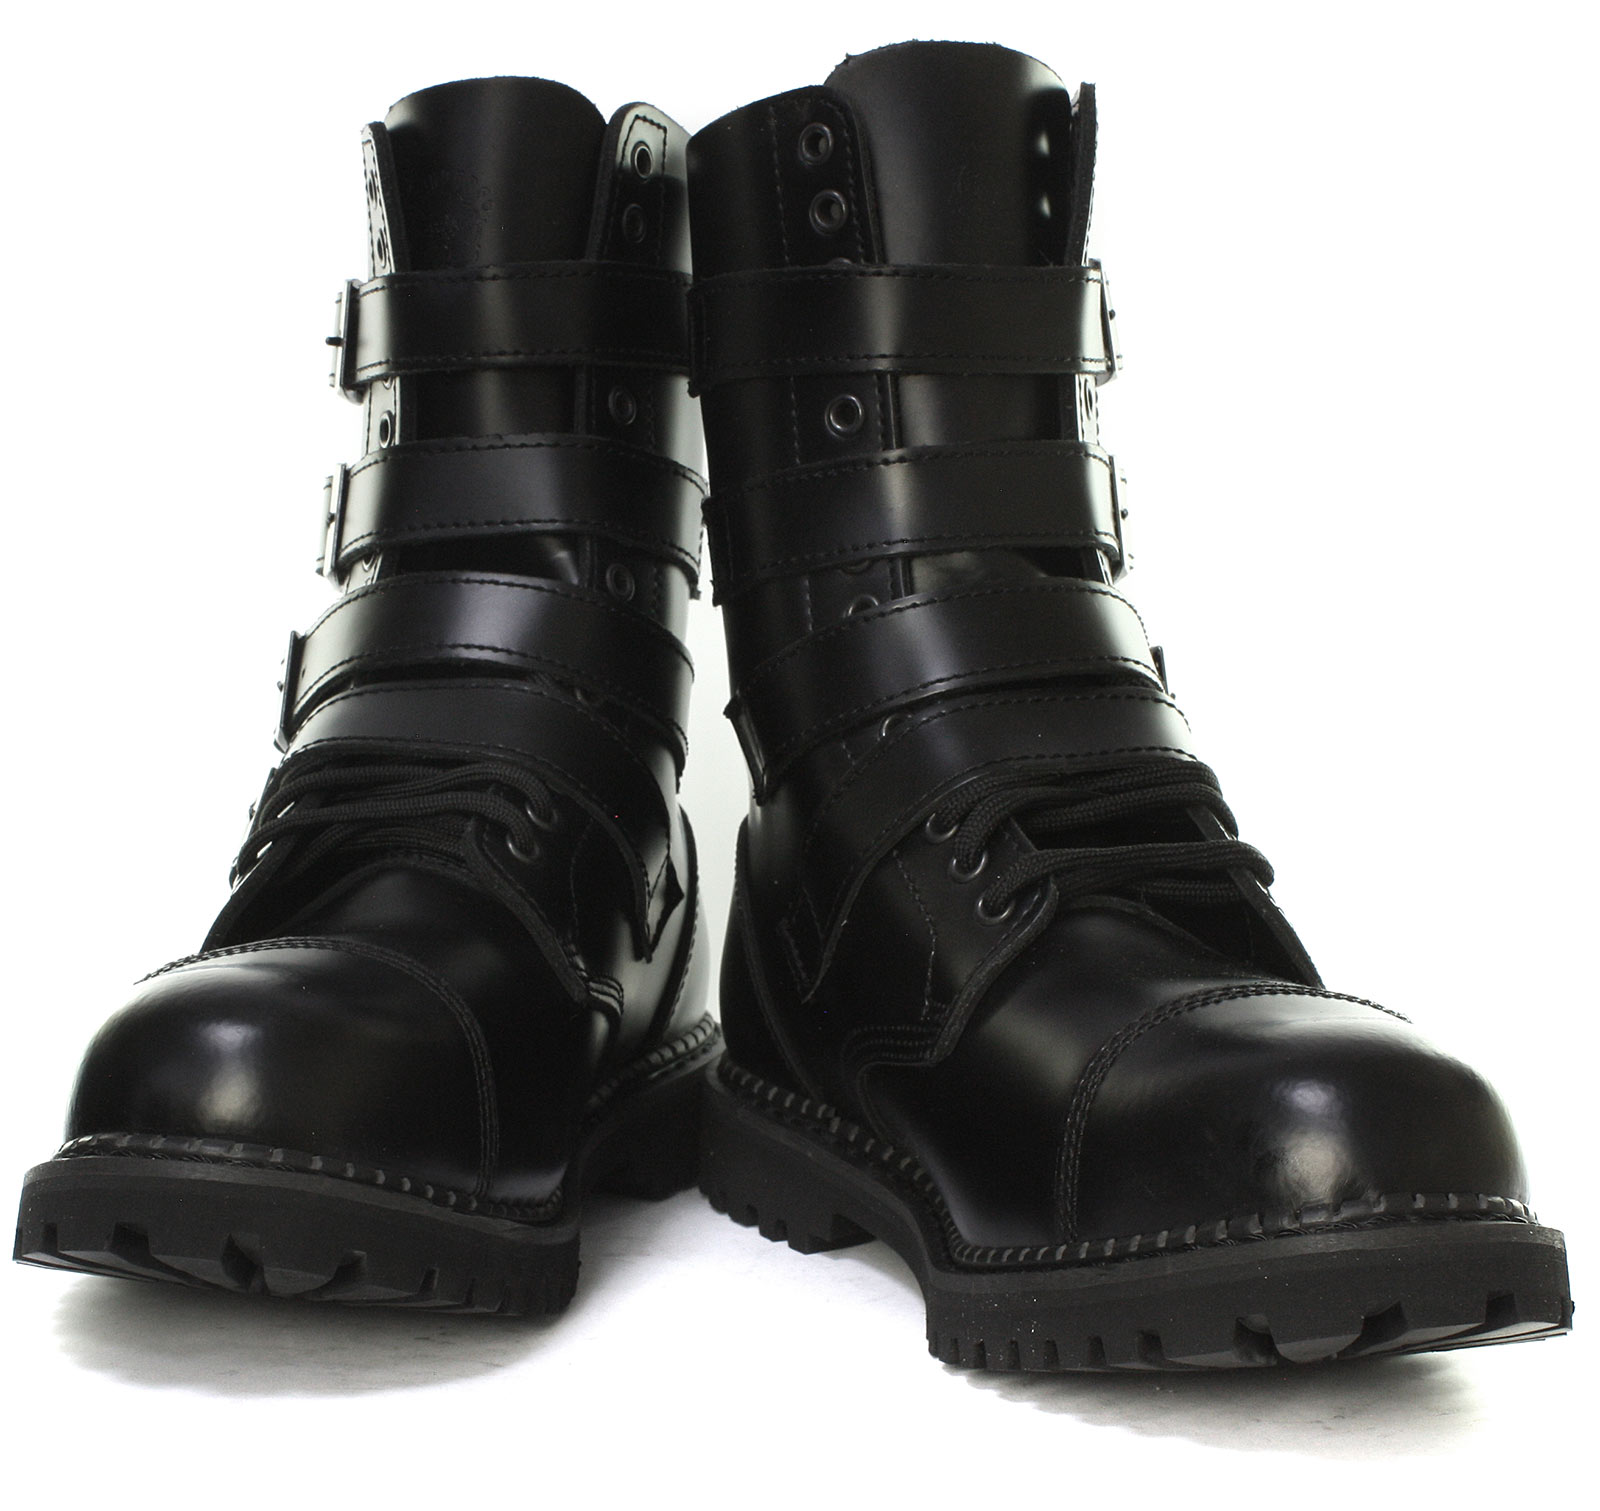 Grinders-Quad-CS-14-Eyelet-Buckle-Unisex-Steel-Toe-Derby-Boots-ALL-SIZES thumbnail 2